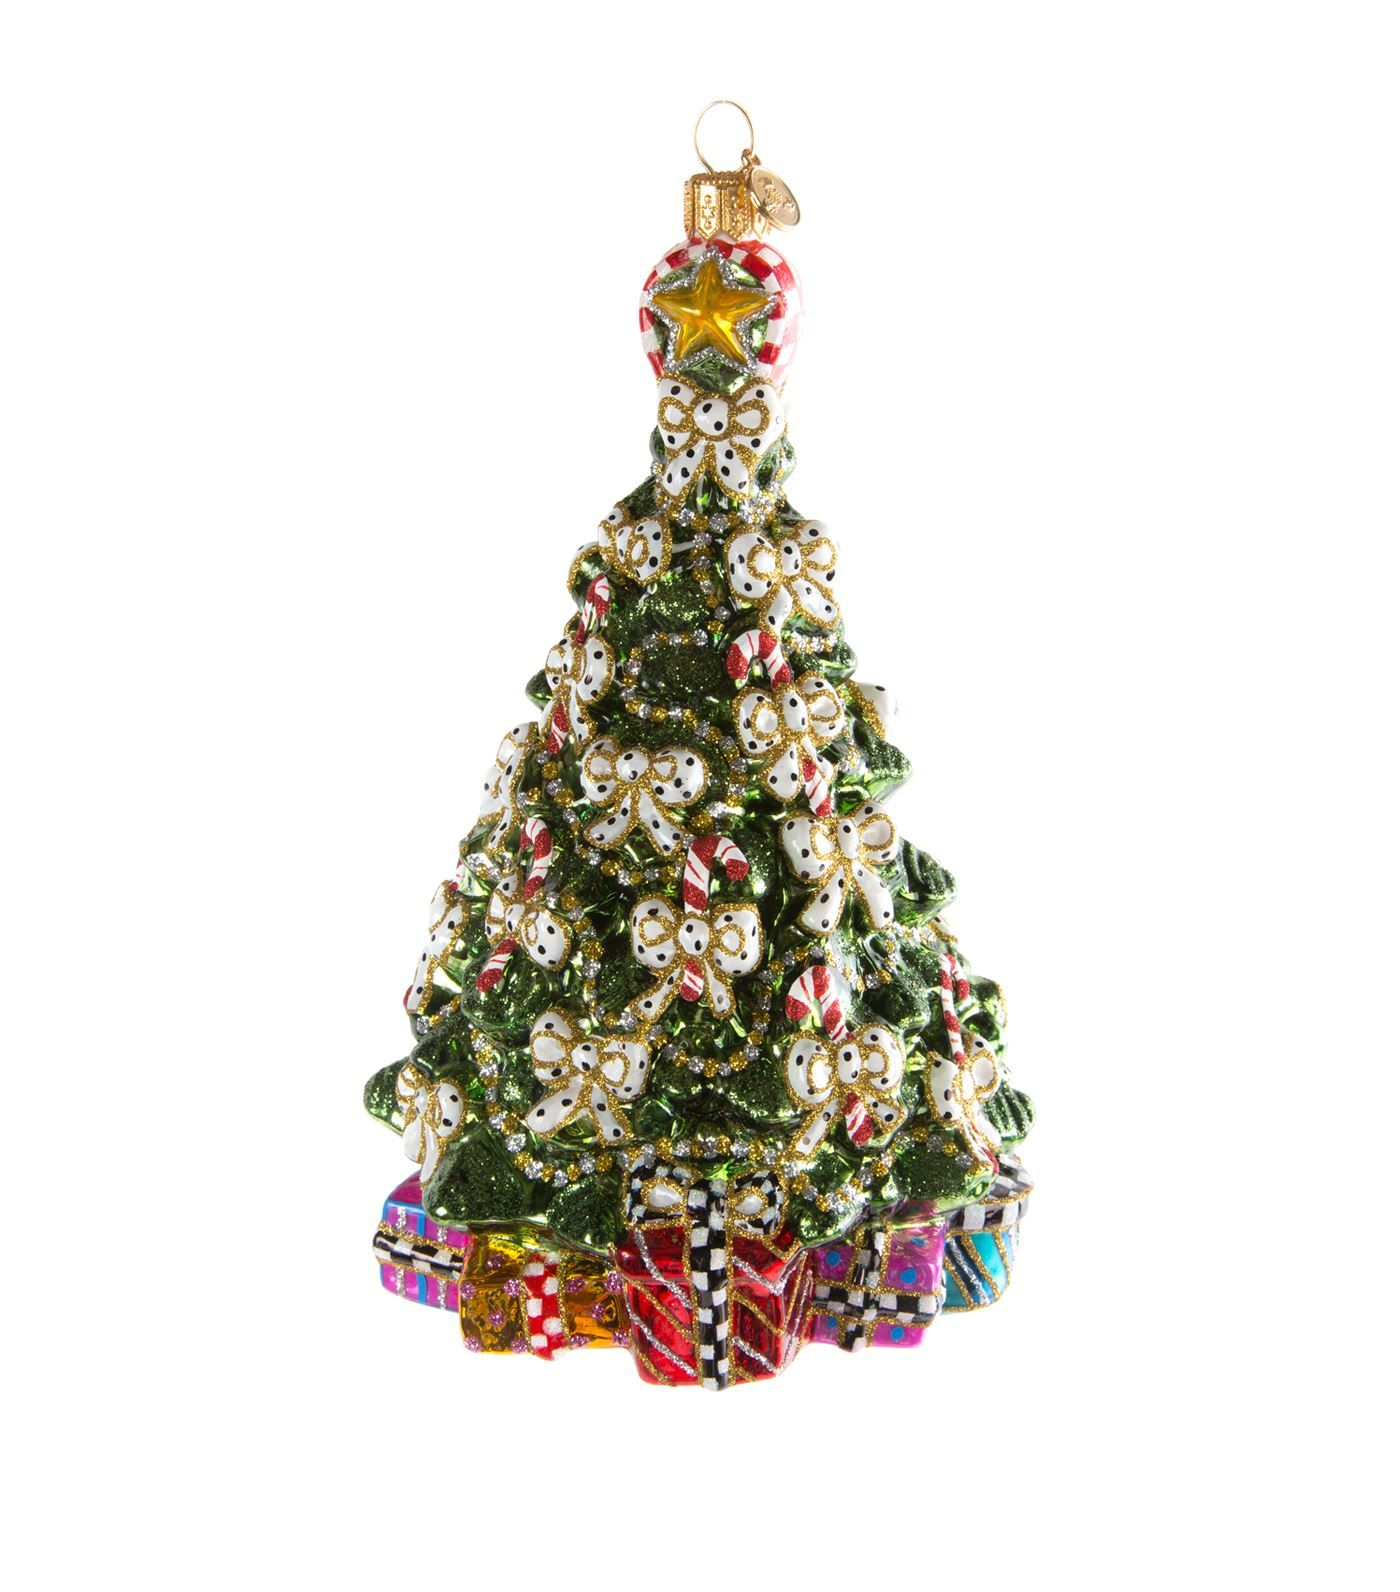 Mackenzie Childs Candy Cane Christmas Tree Decoration Available To Buy At